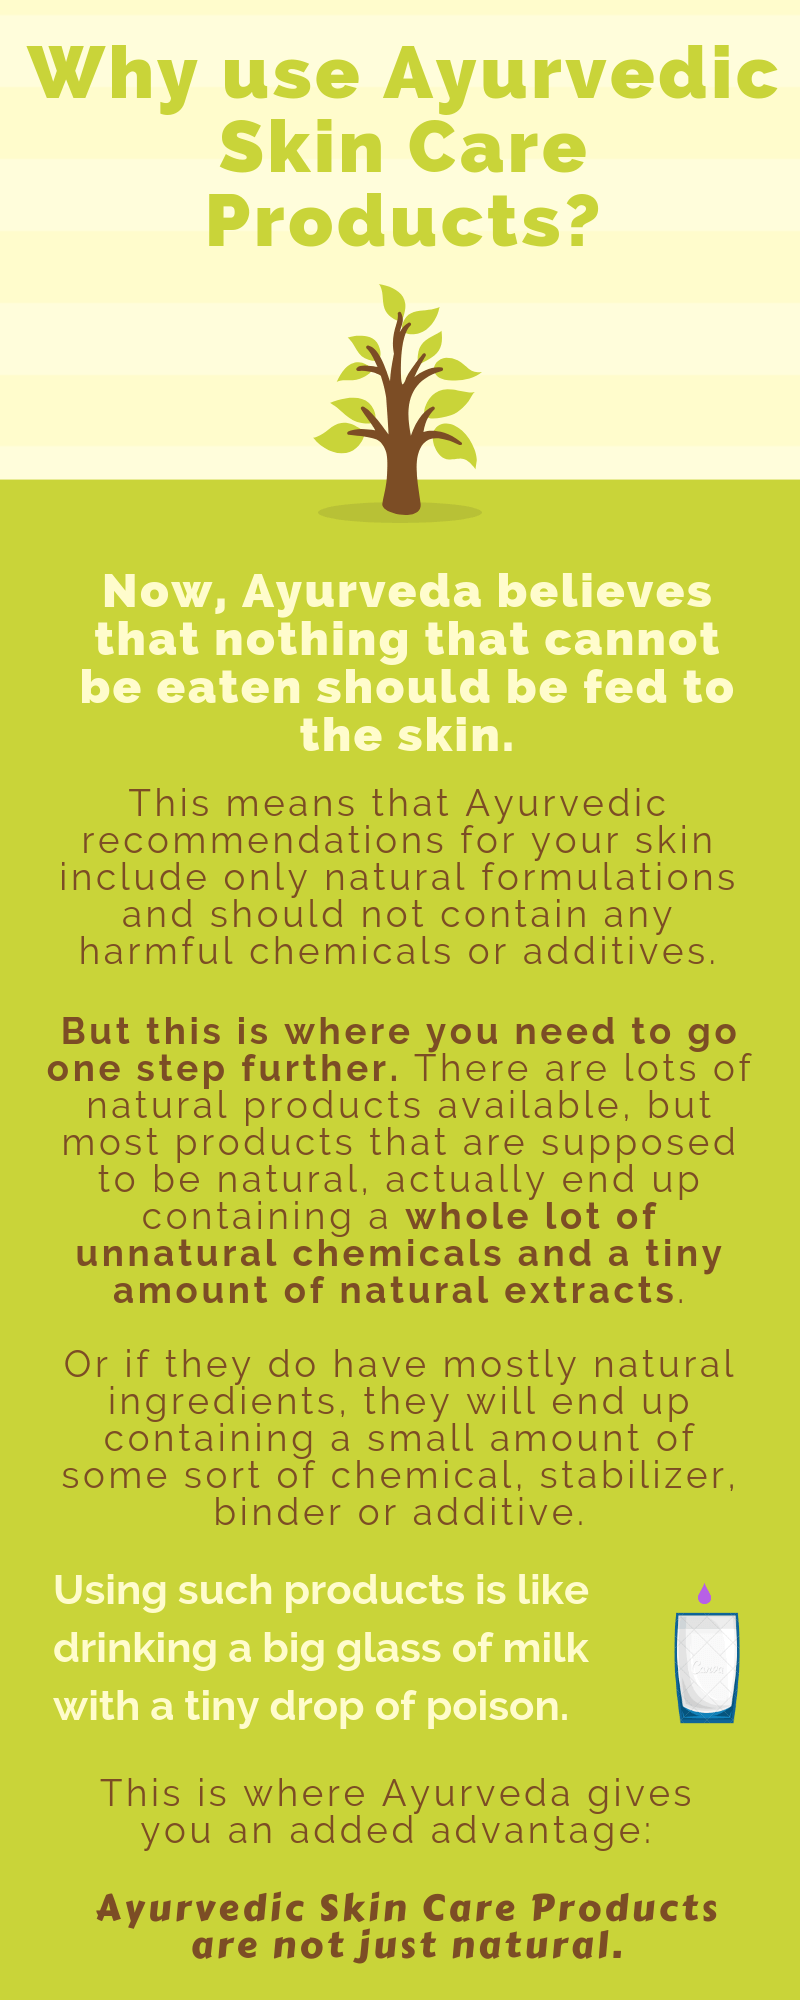 Why use Ayurvedic Skincare products?